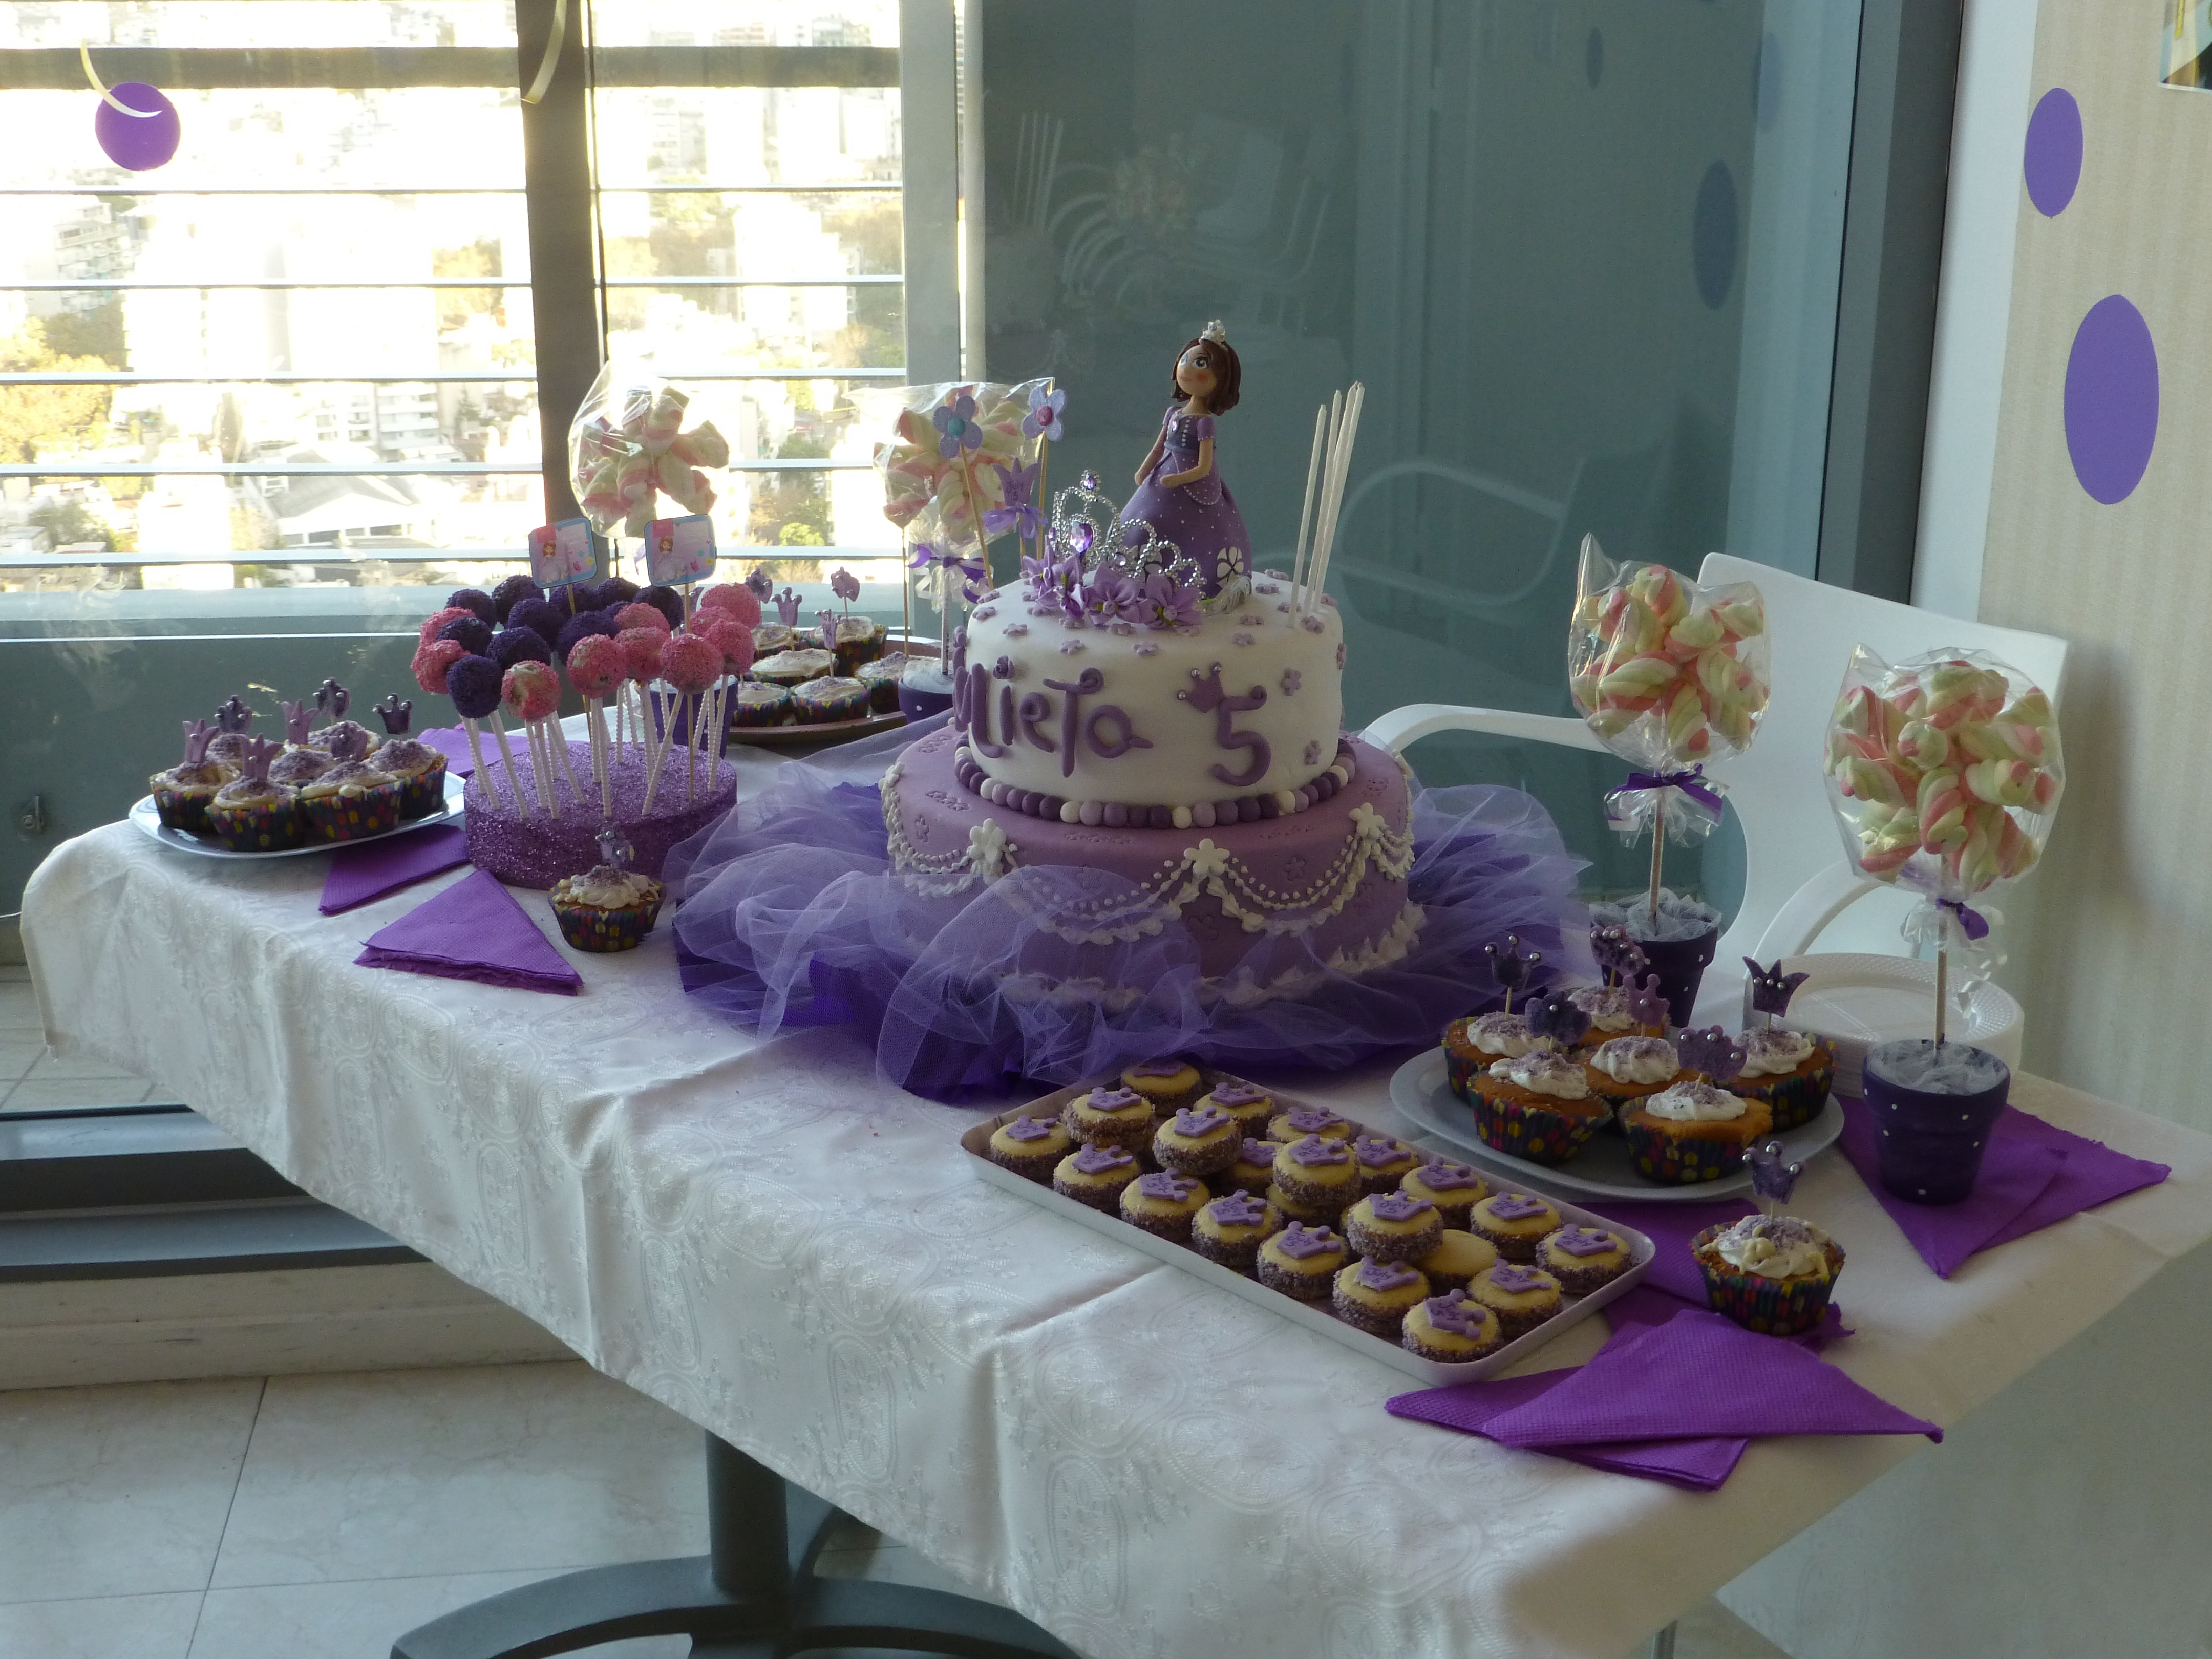 88 best images about Sofia the first party ideas on Pinterest